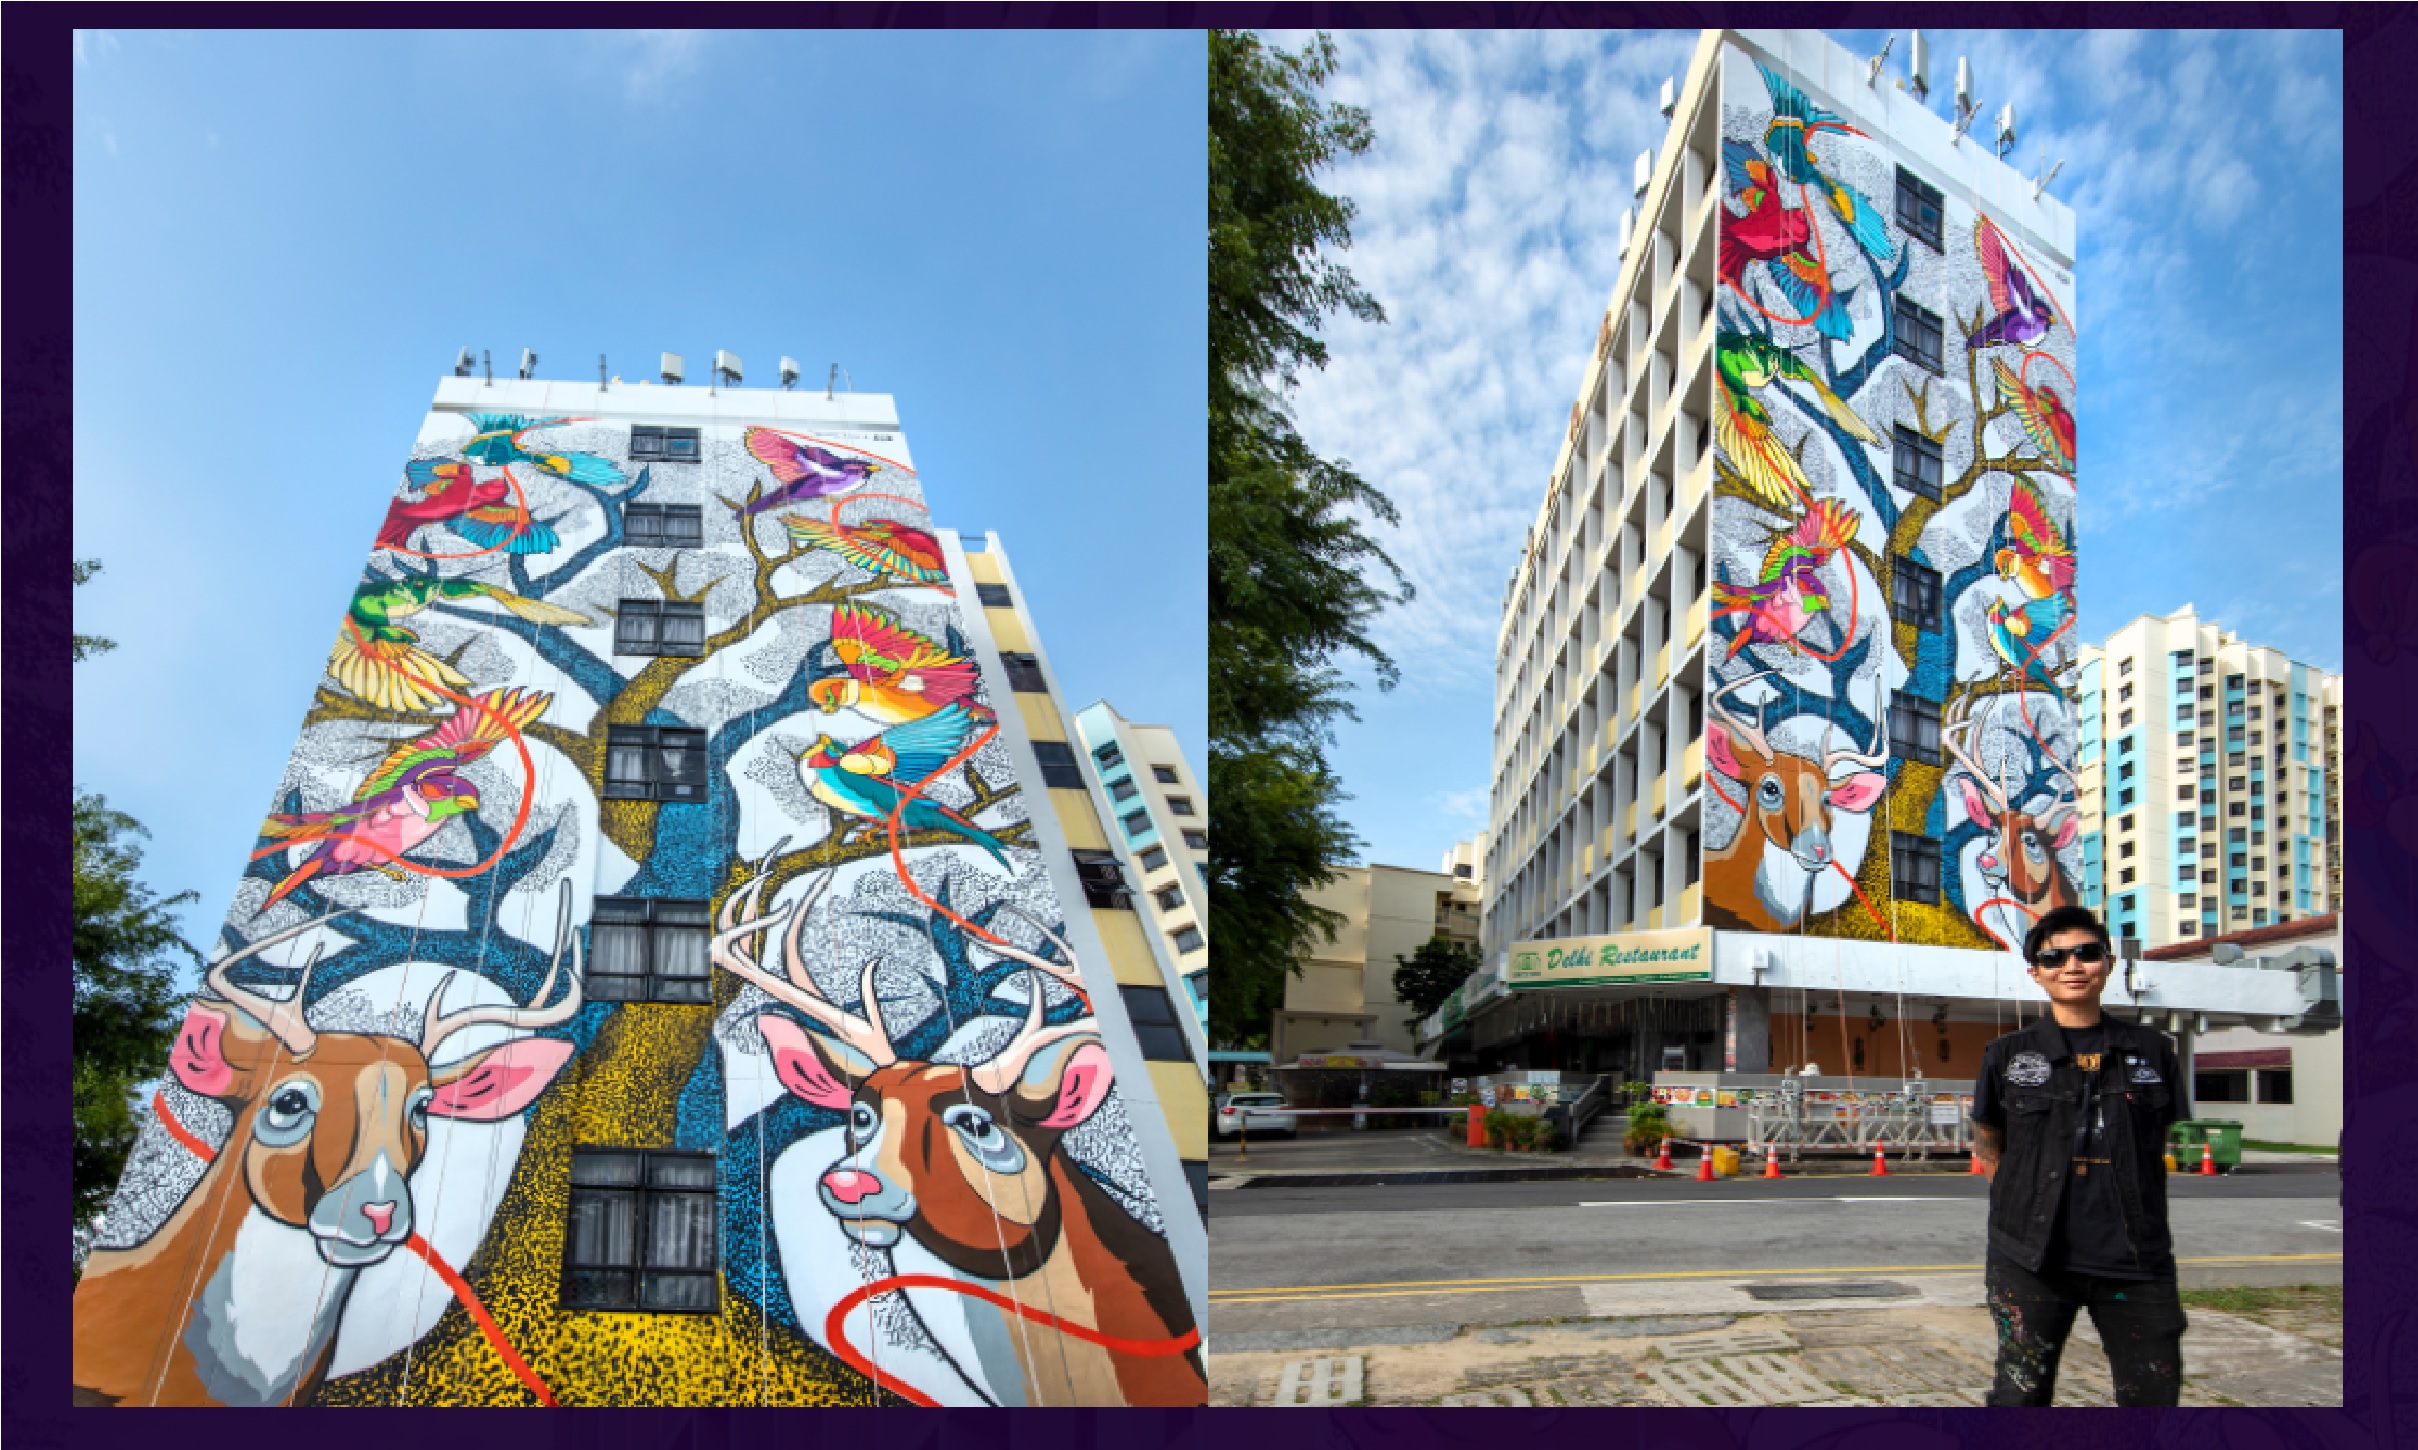 One of the tallest murals in Singapore, 'Dancing in Unison' stands at seven storeys tall on the façade of Broadway Hotel in Little India. Photo Courtesy: AWLI